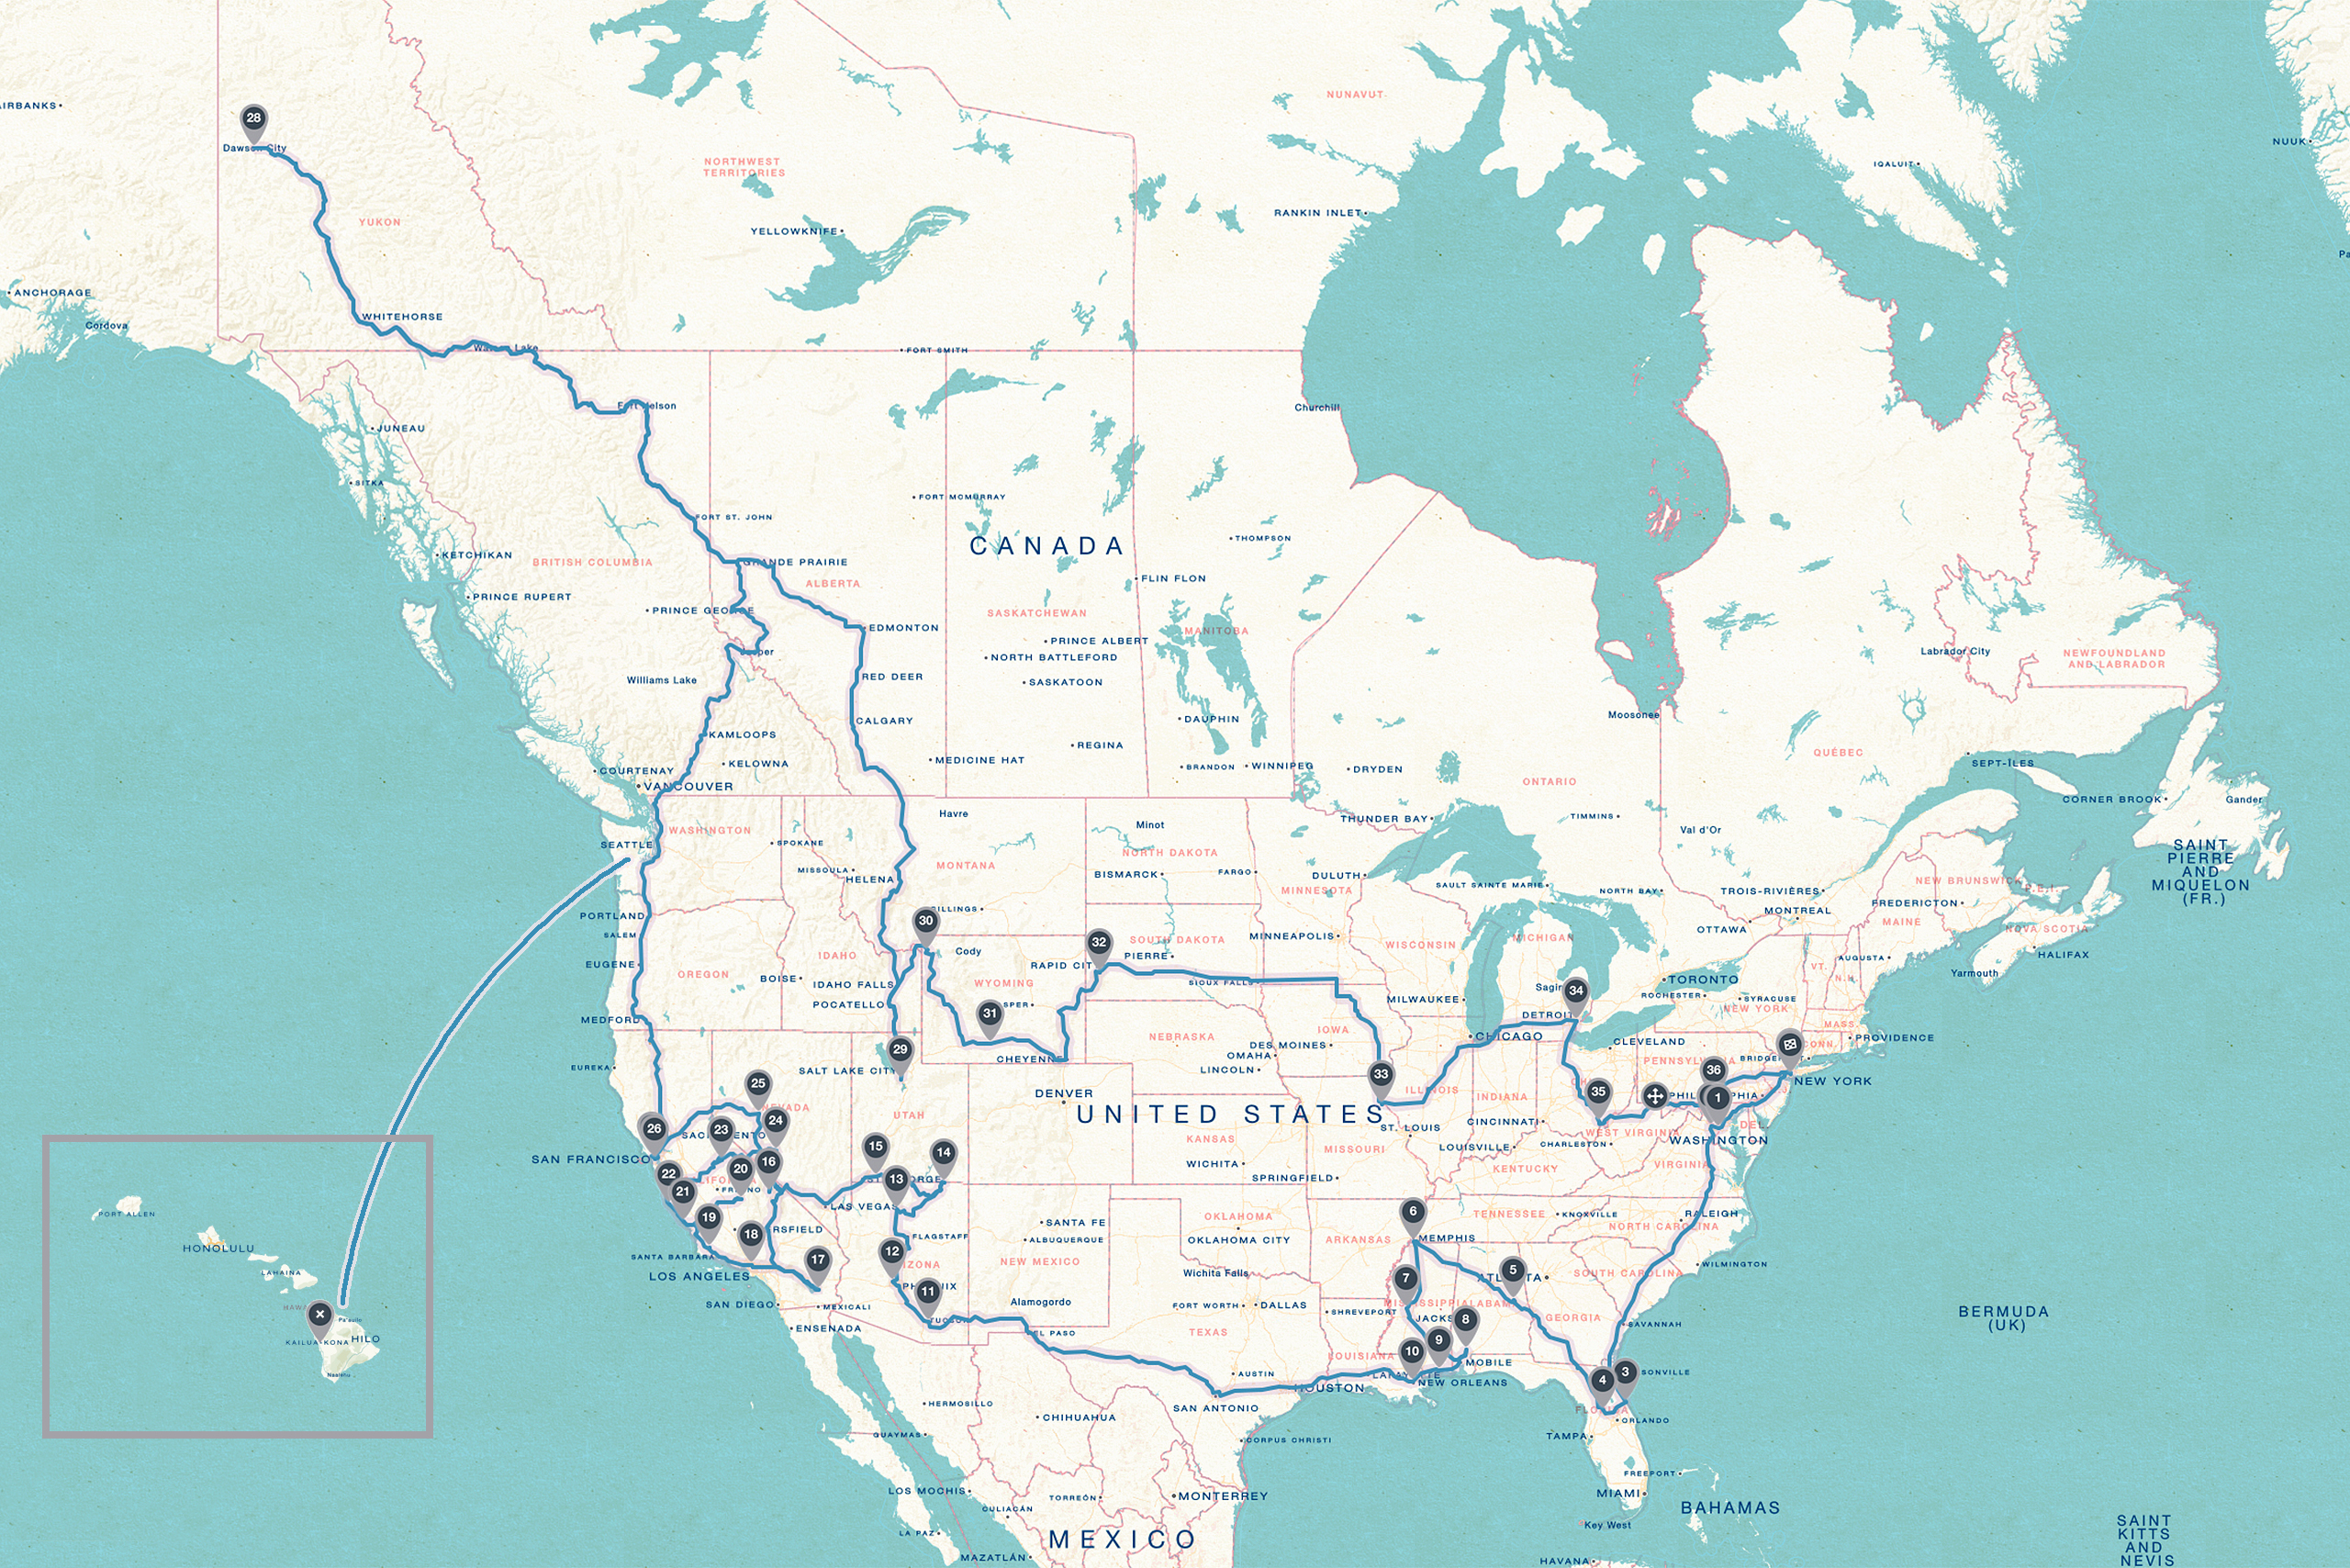 This map was created with roadtrippers.com